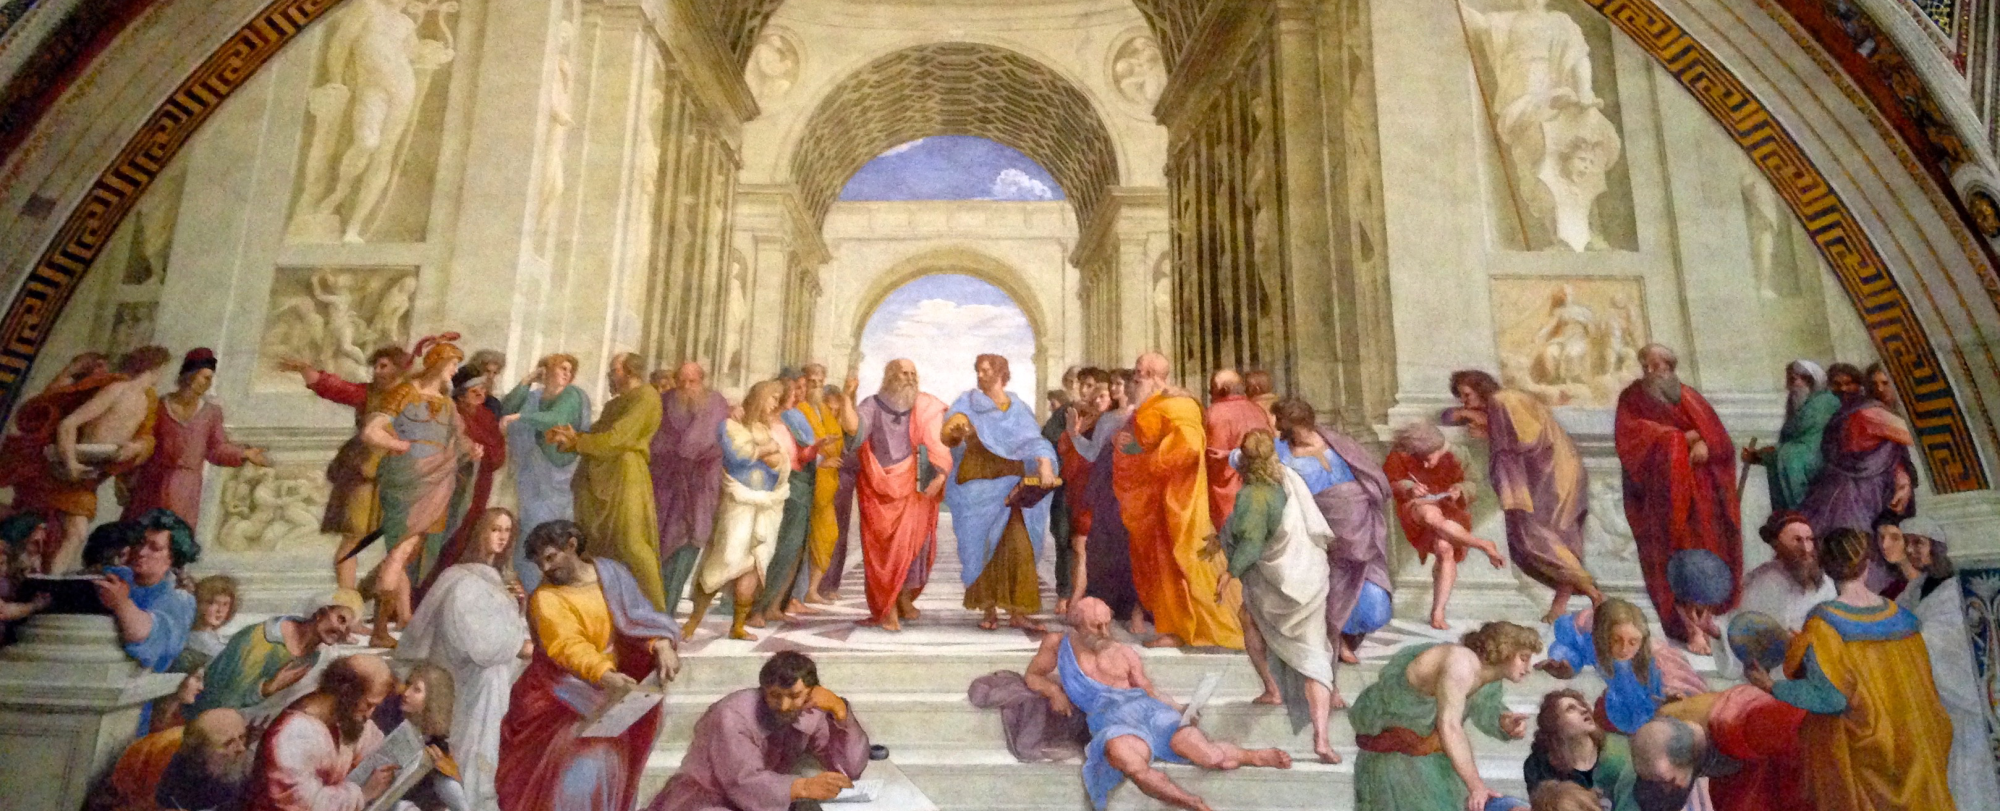 cropped-School-of-Athens.png